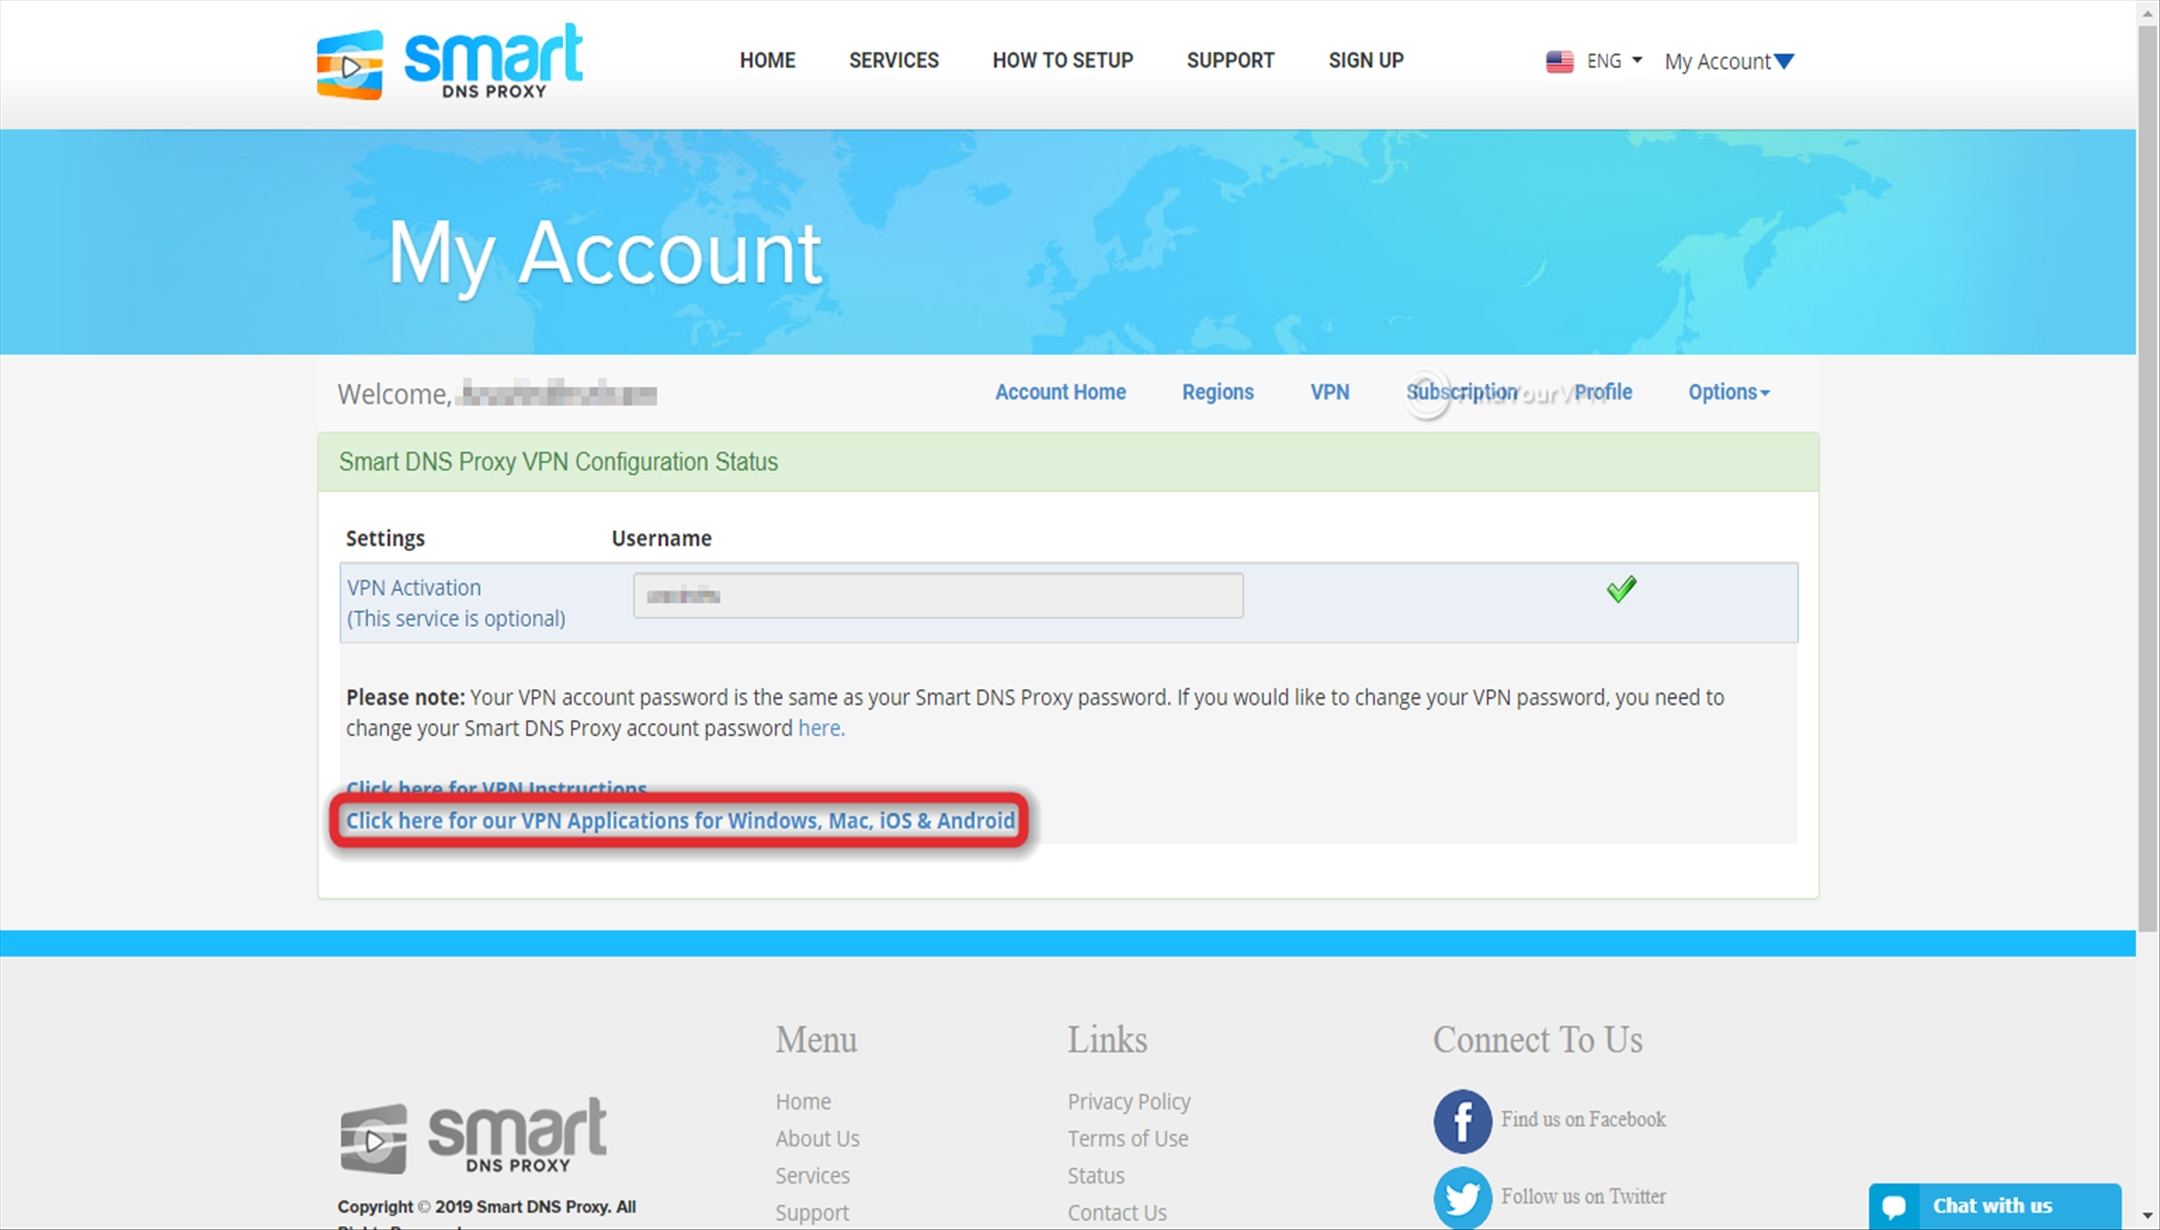 Smart DNS Proxy Download Click here button